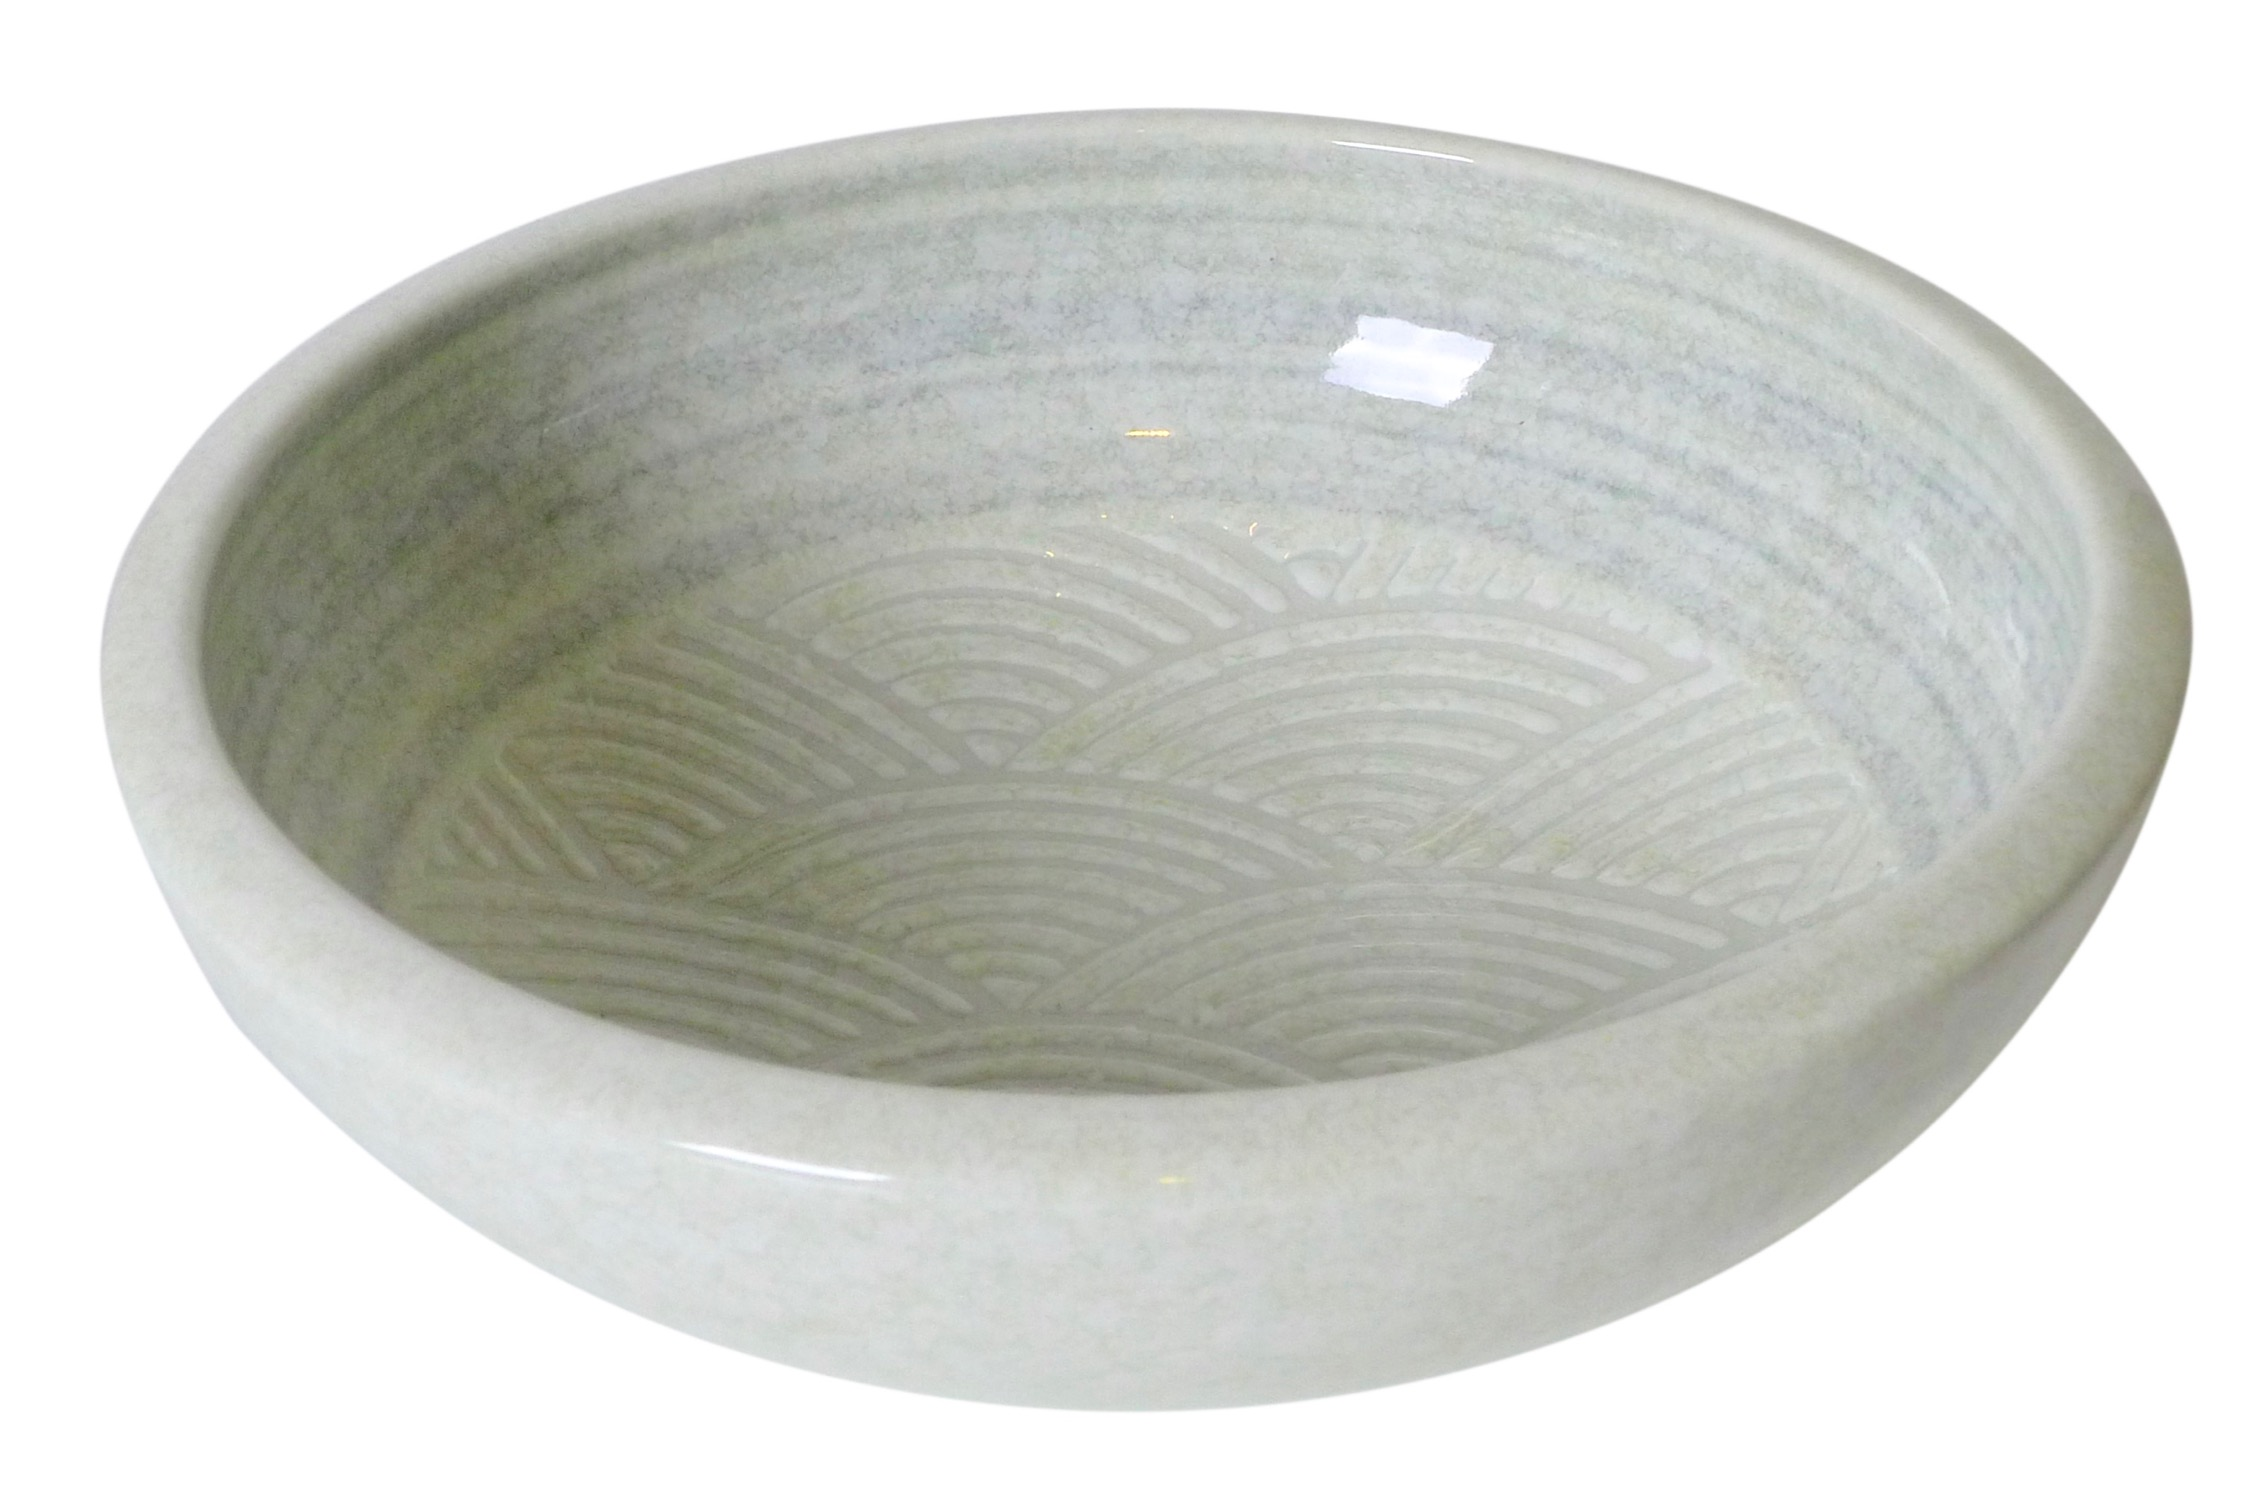 Image of White Porcelain Shallow Bowl with Rainbow Fan Design, 7.75-Inch